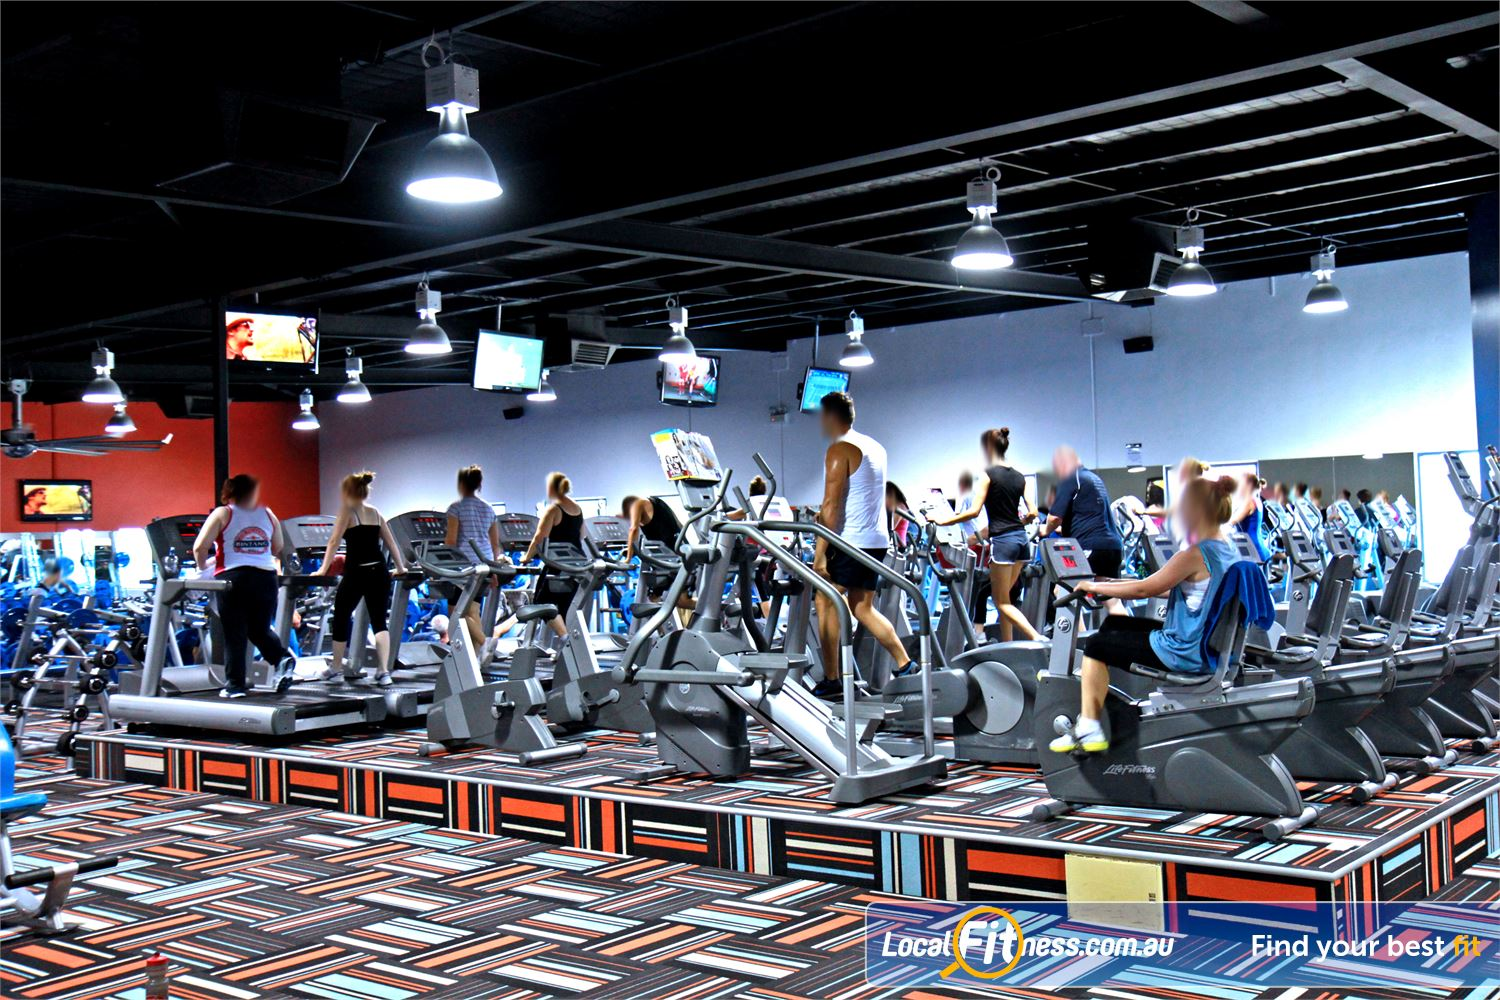 Goodlife Health Clubs Kingsway Near Pearsall Tune into your favorite shows on the cardio theatre.